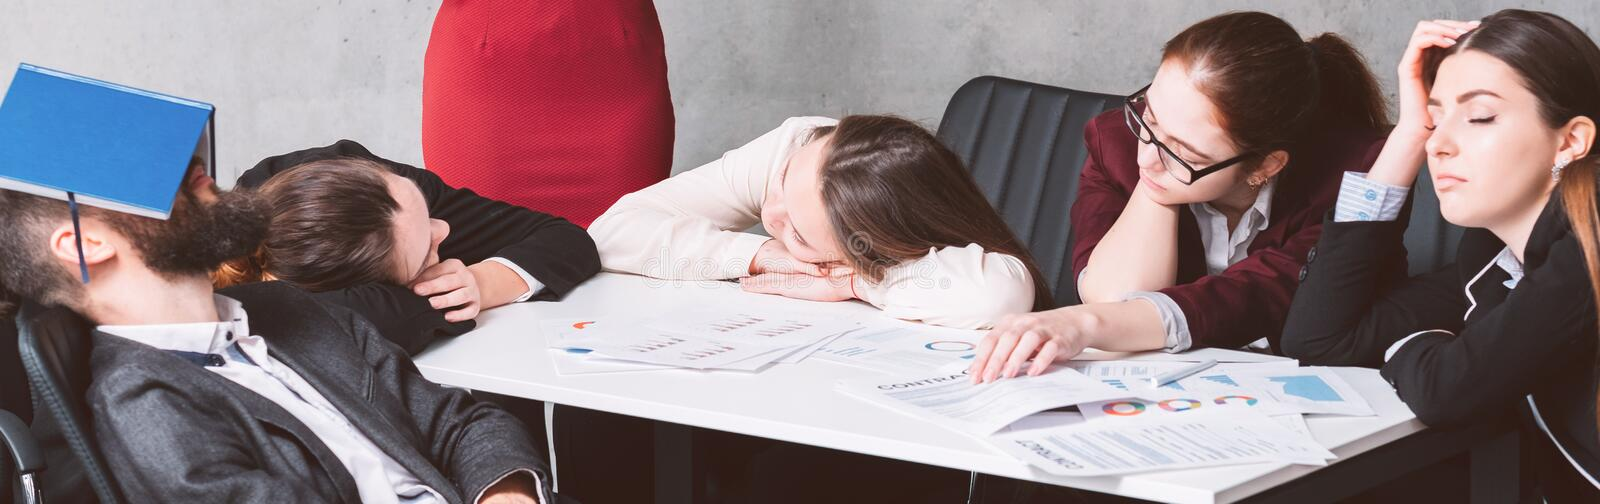 Report overwork business fatigue tired team sleep royalty free stock images